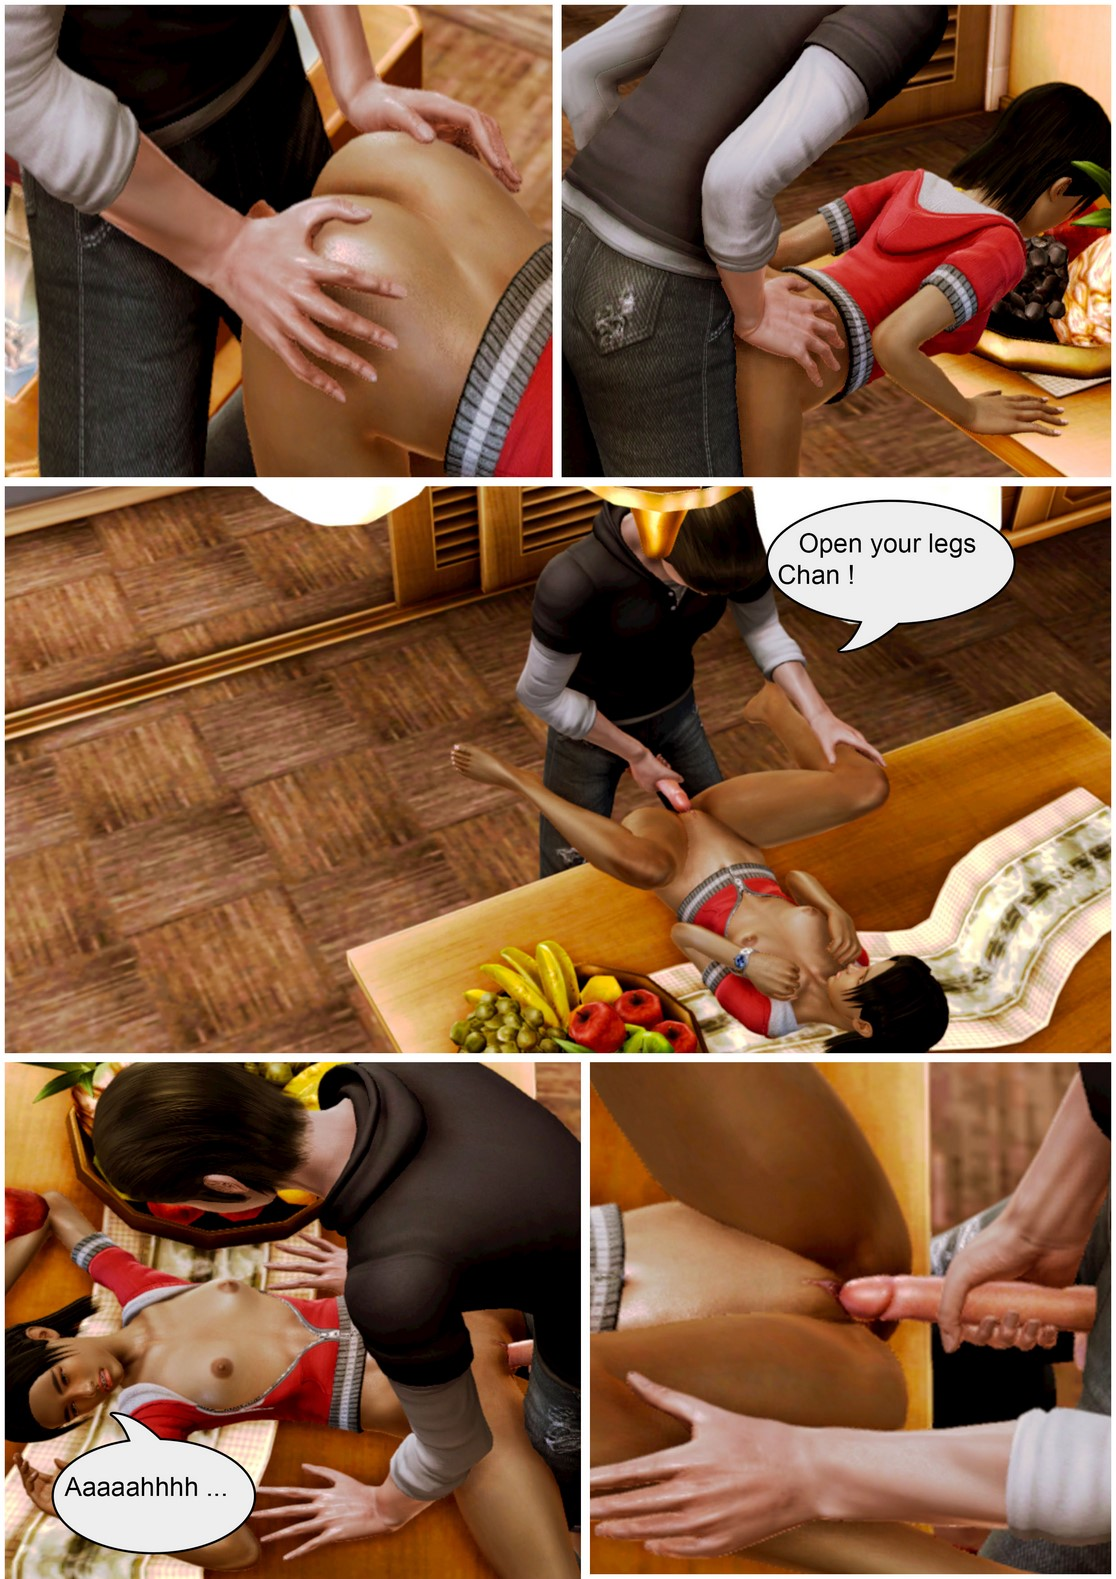 Wolfyperv-Adopted child's love for his sister 2